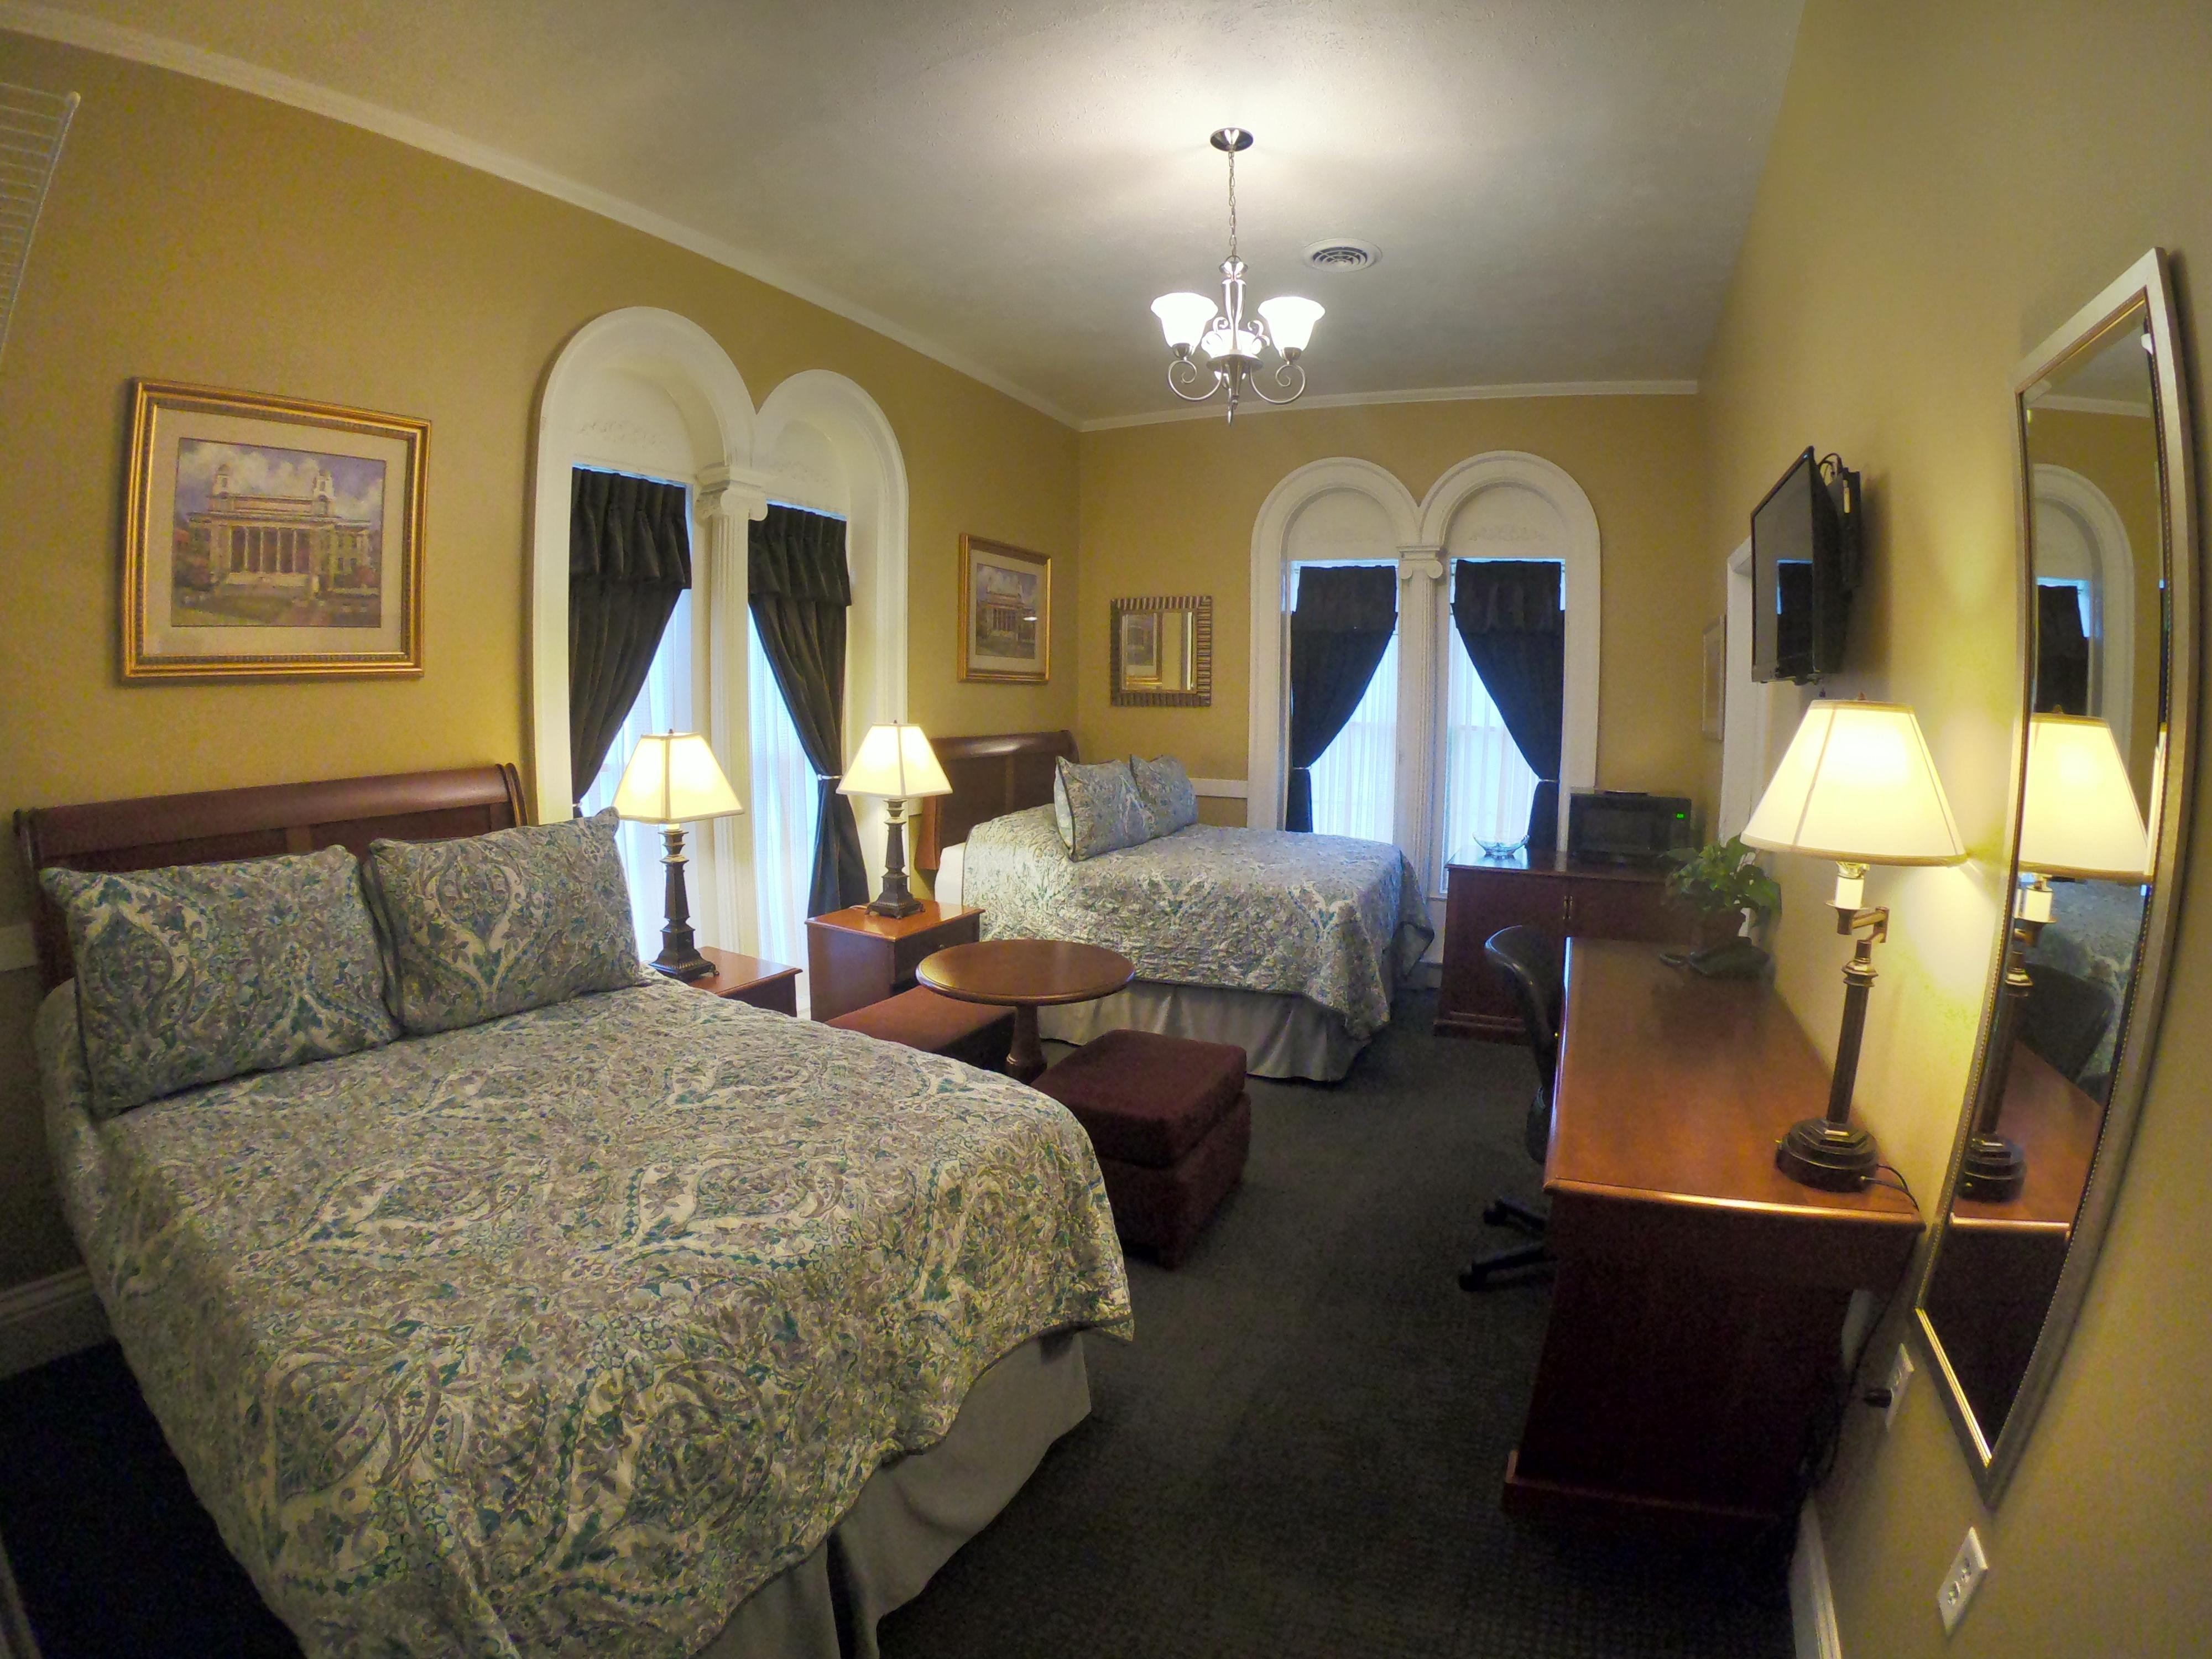 Picture of: Double Room 215 2 Full Size Beds Beacon Hotel Hotels For Rent In Oswego New York United States